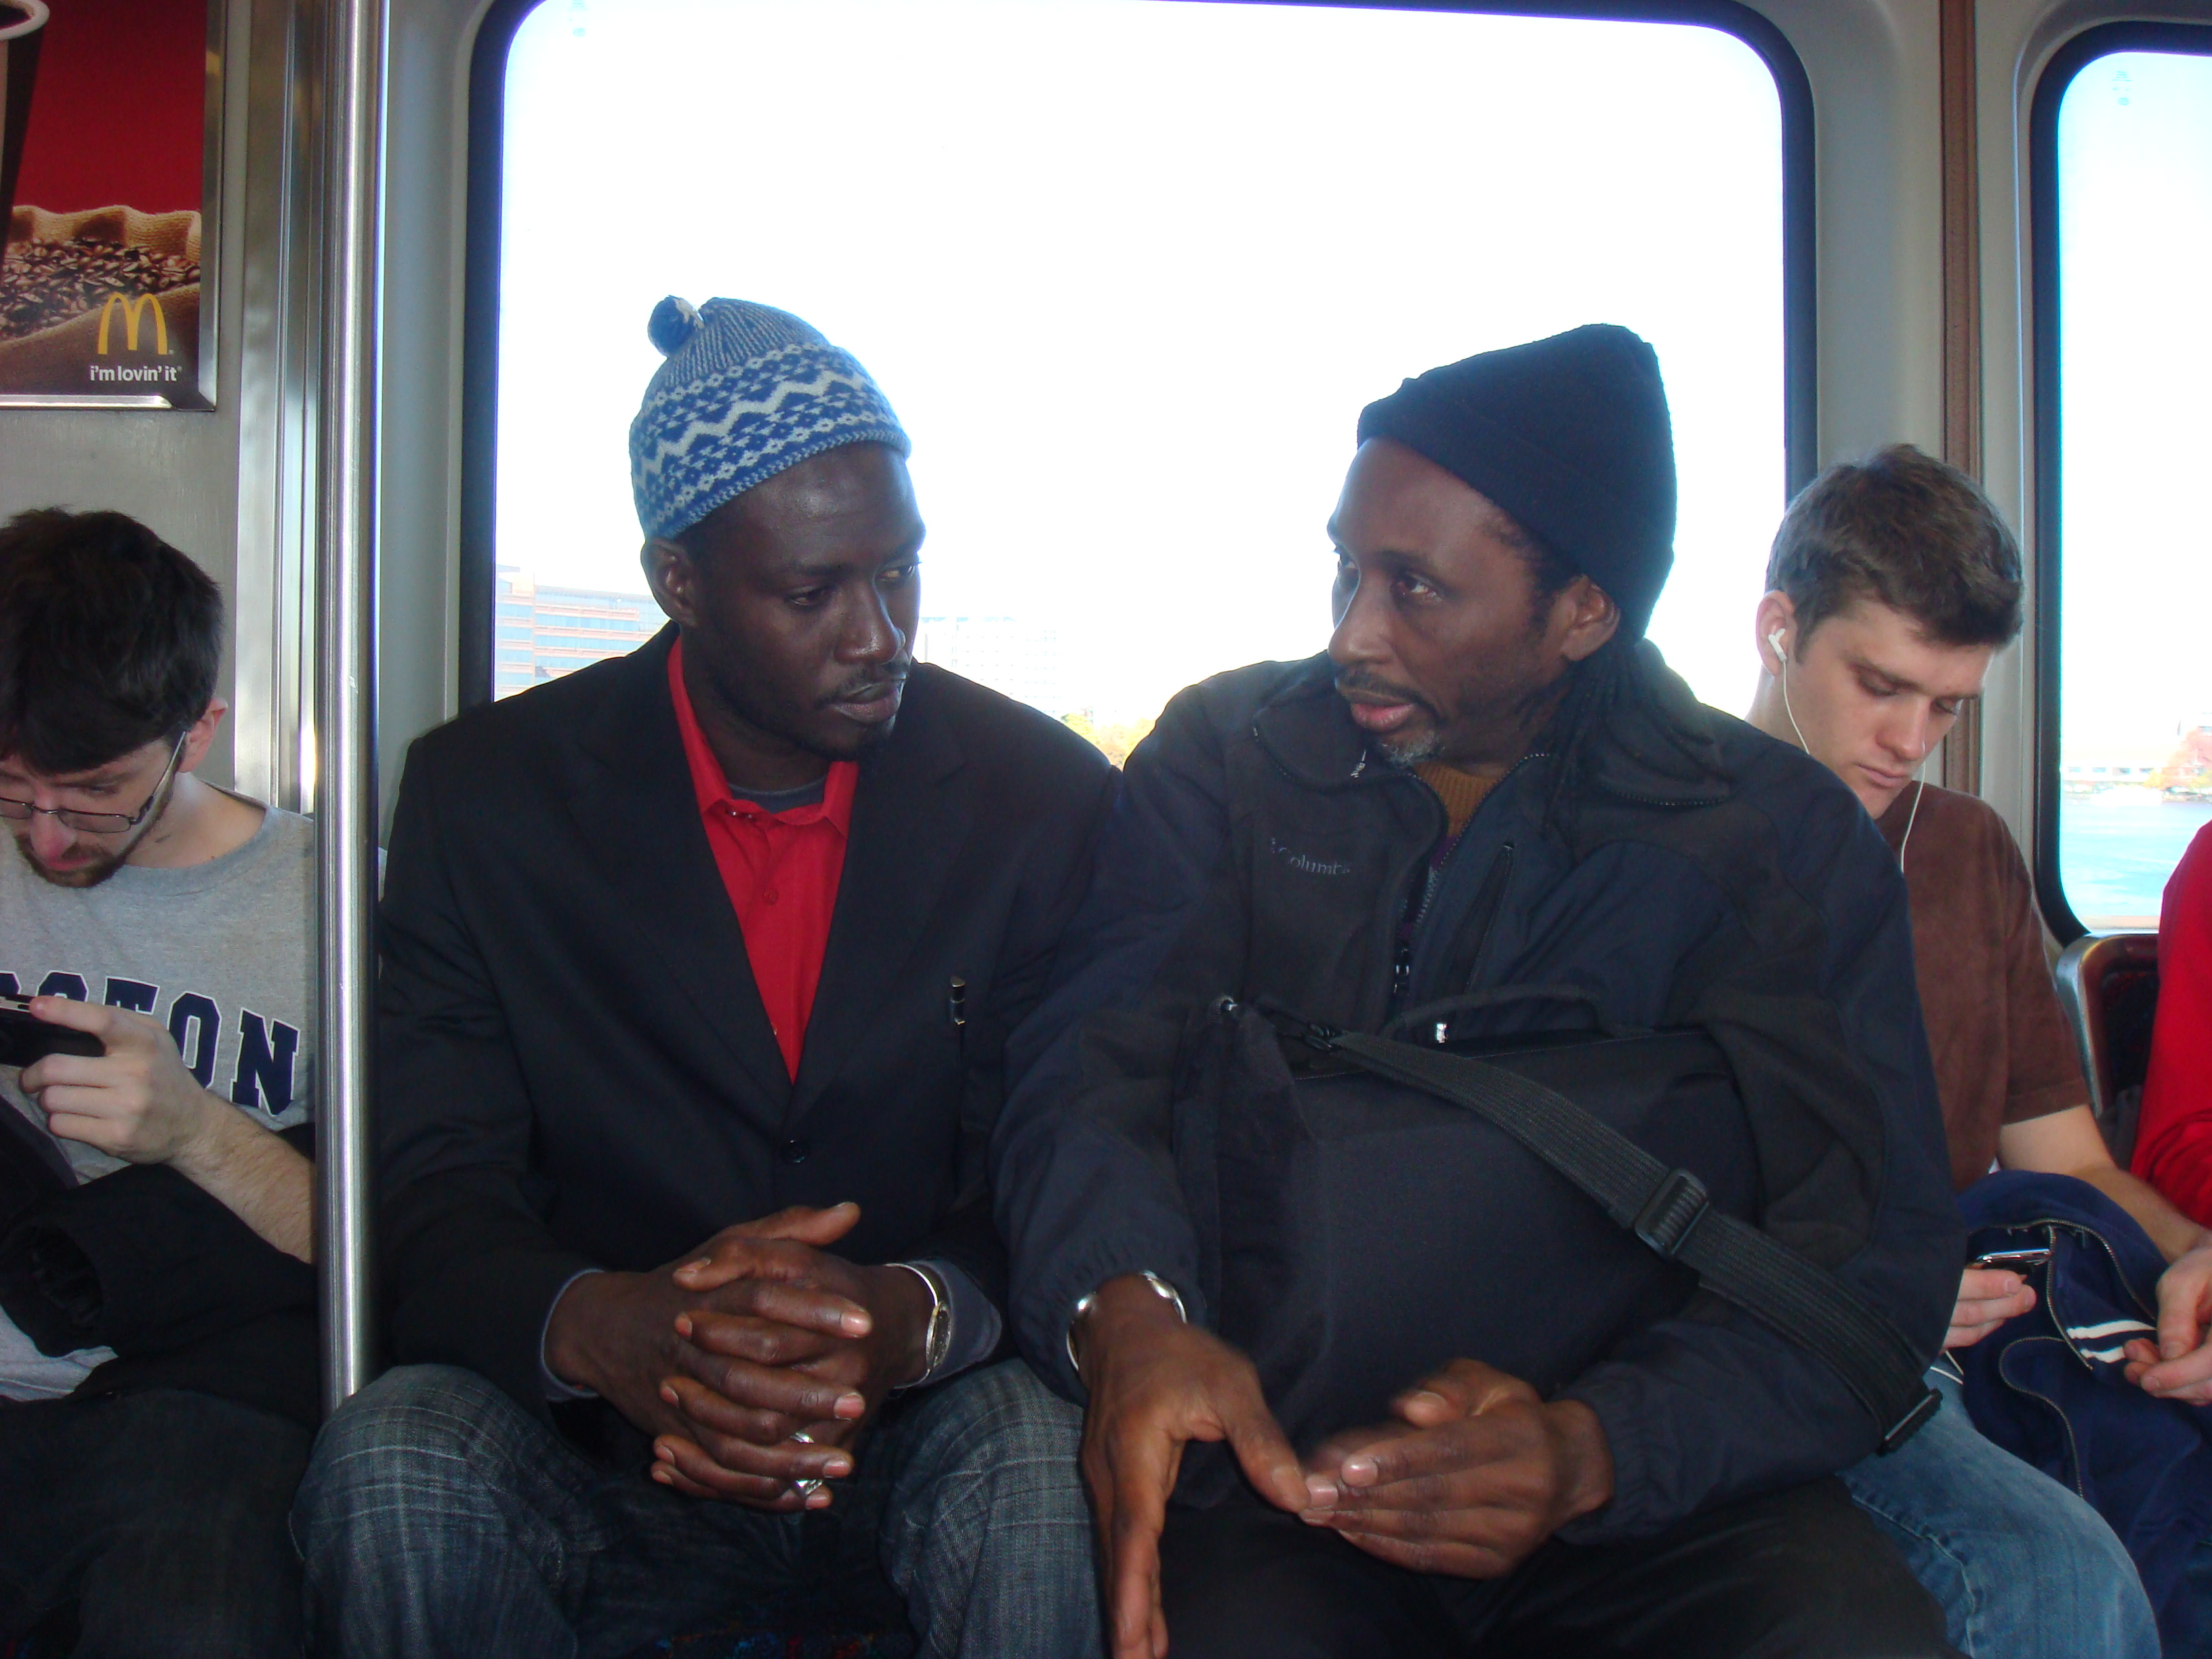 Moustapha and Sipho on the train.